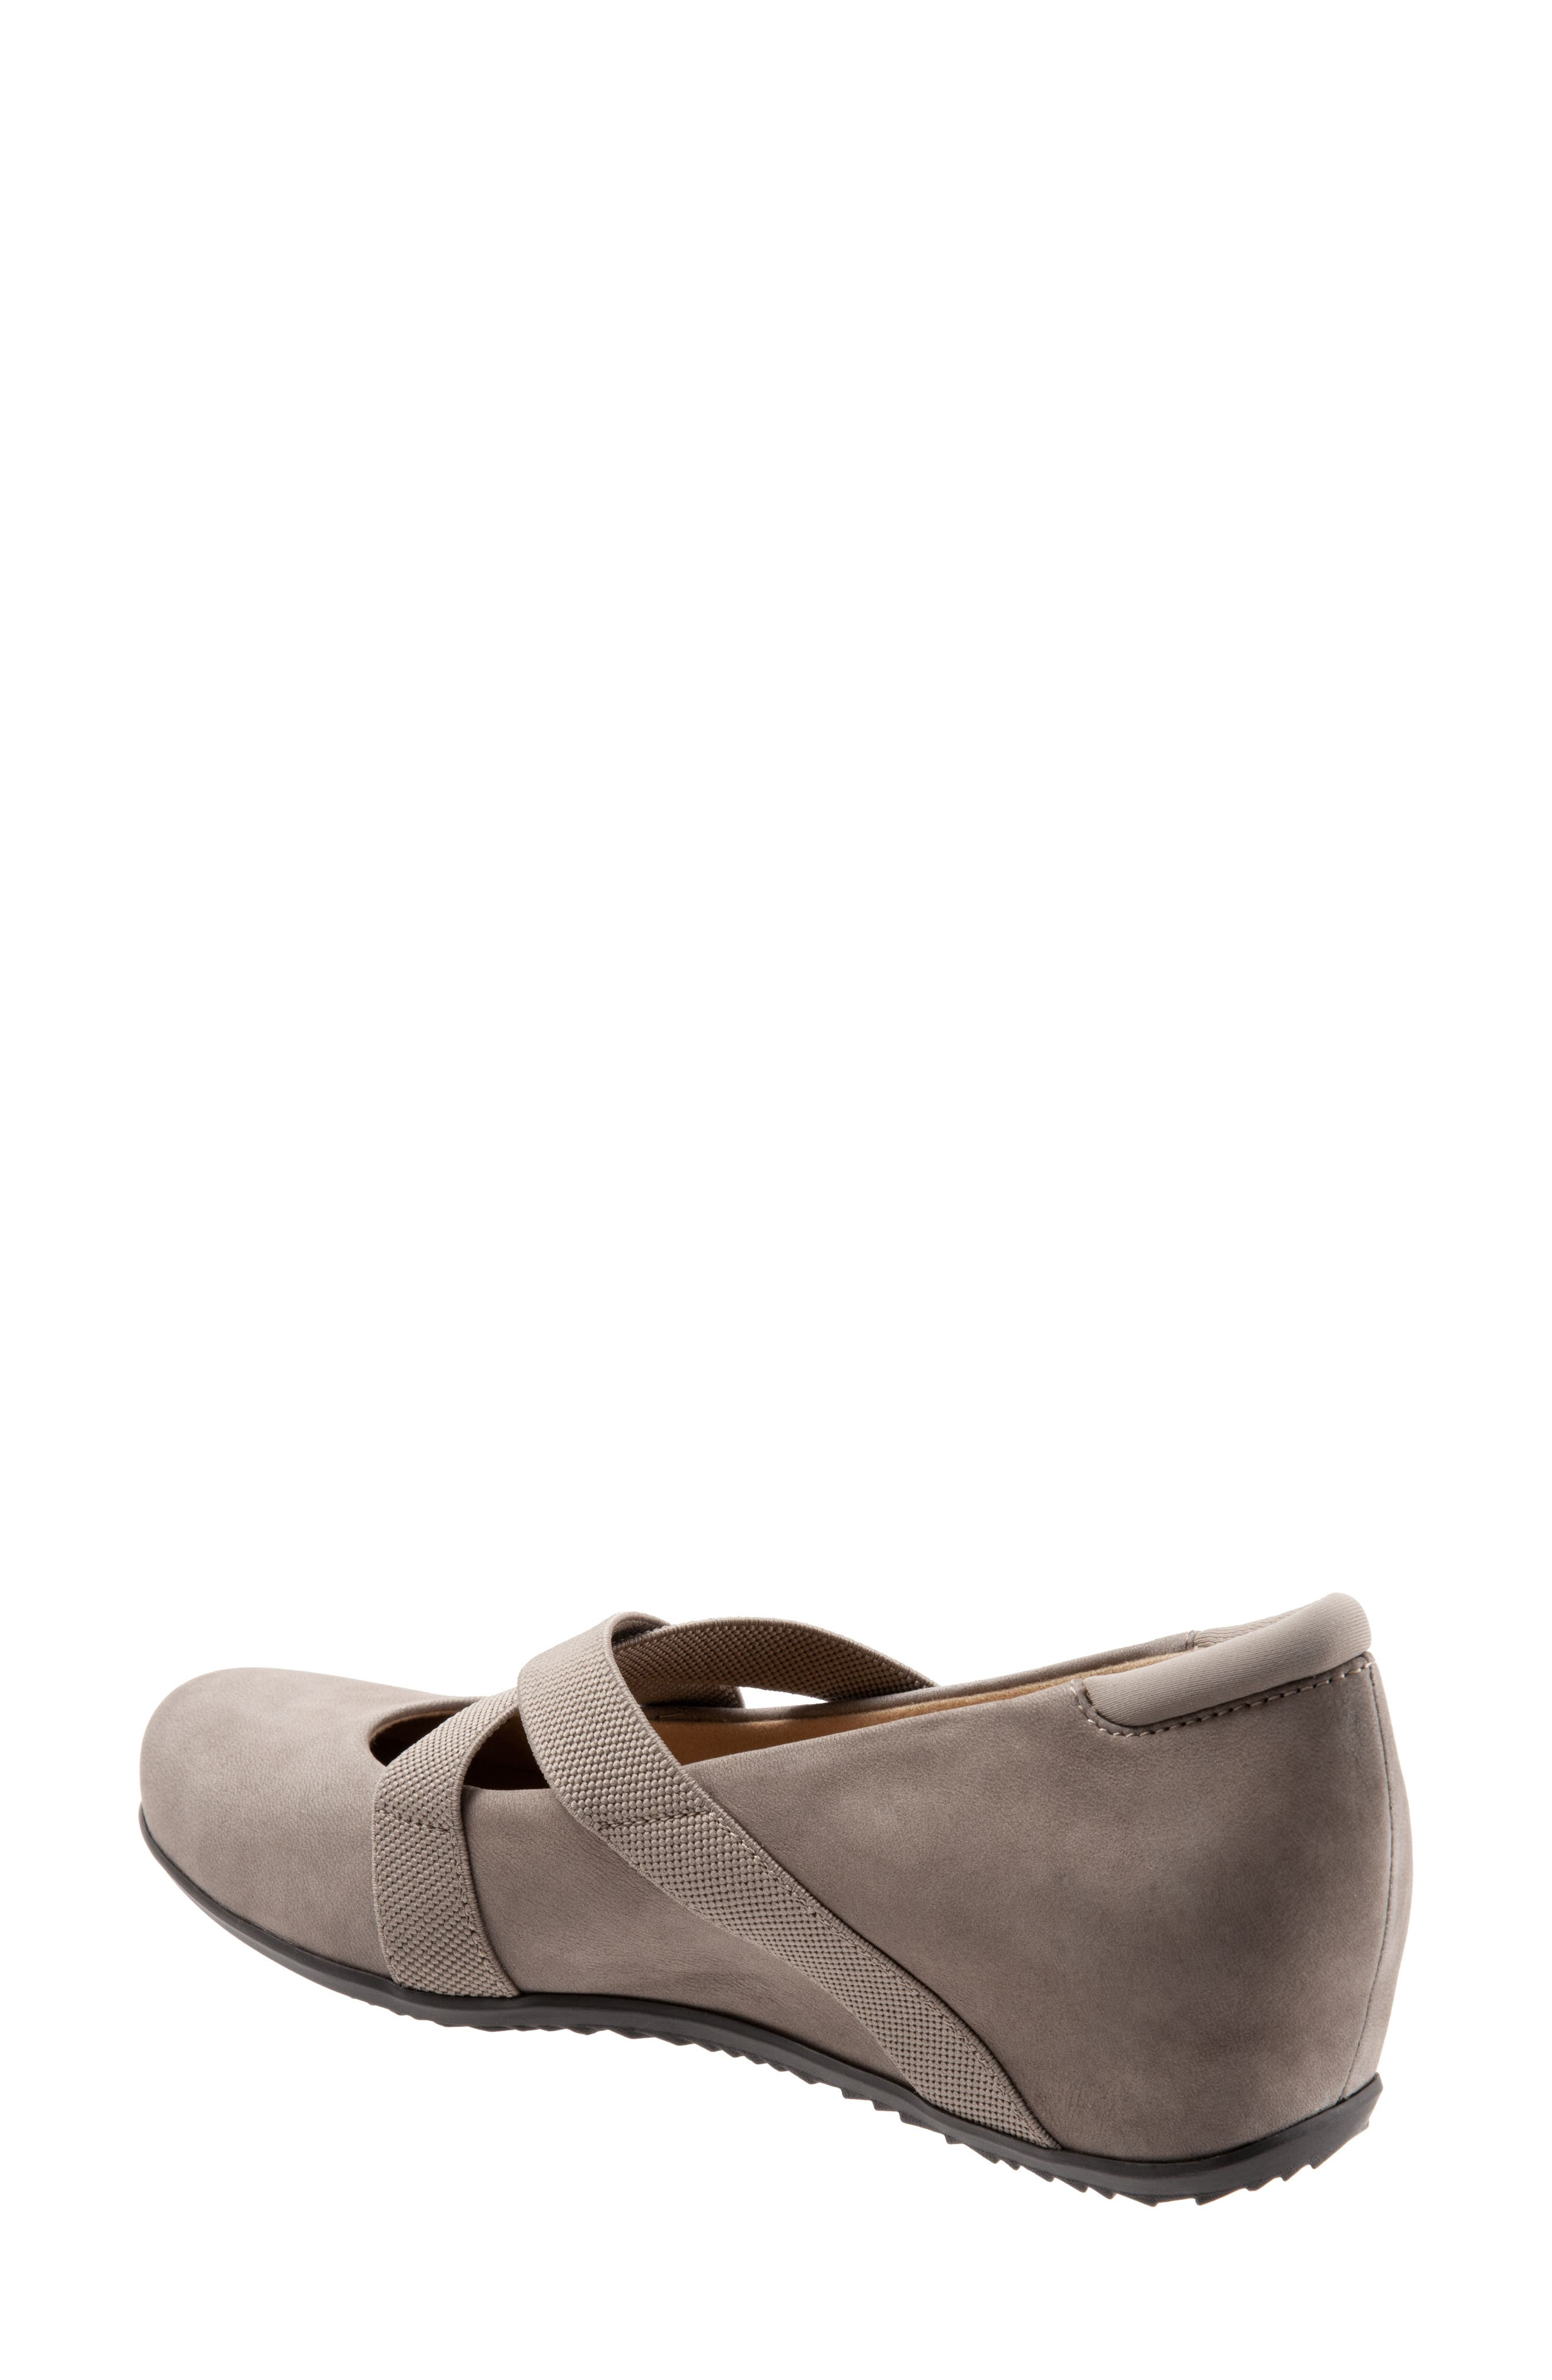 Waverly Mary Jane Wedge,                             Alternate thumbnail 2, color,                             TAUPE LEATHER